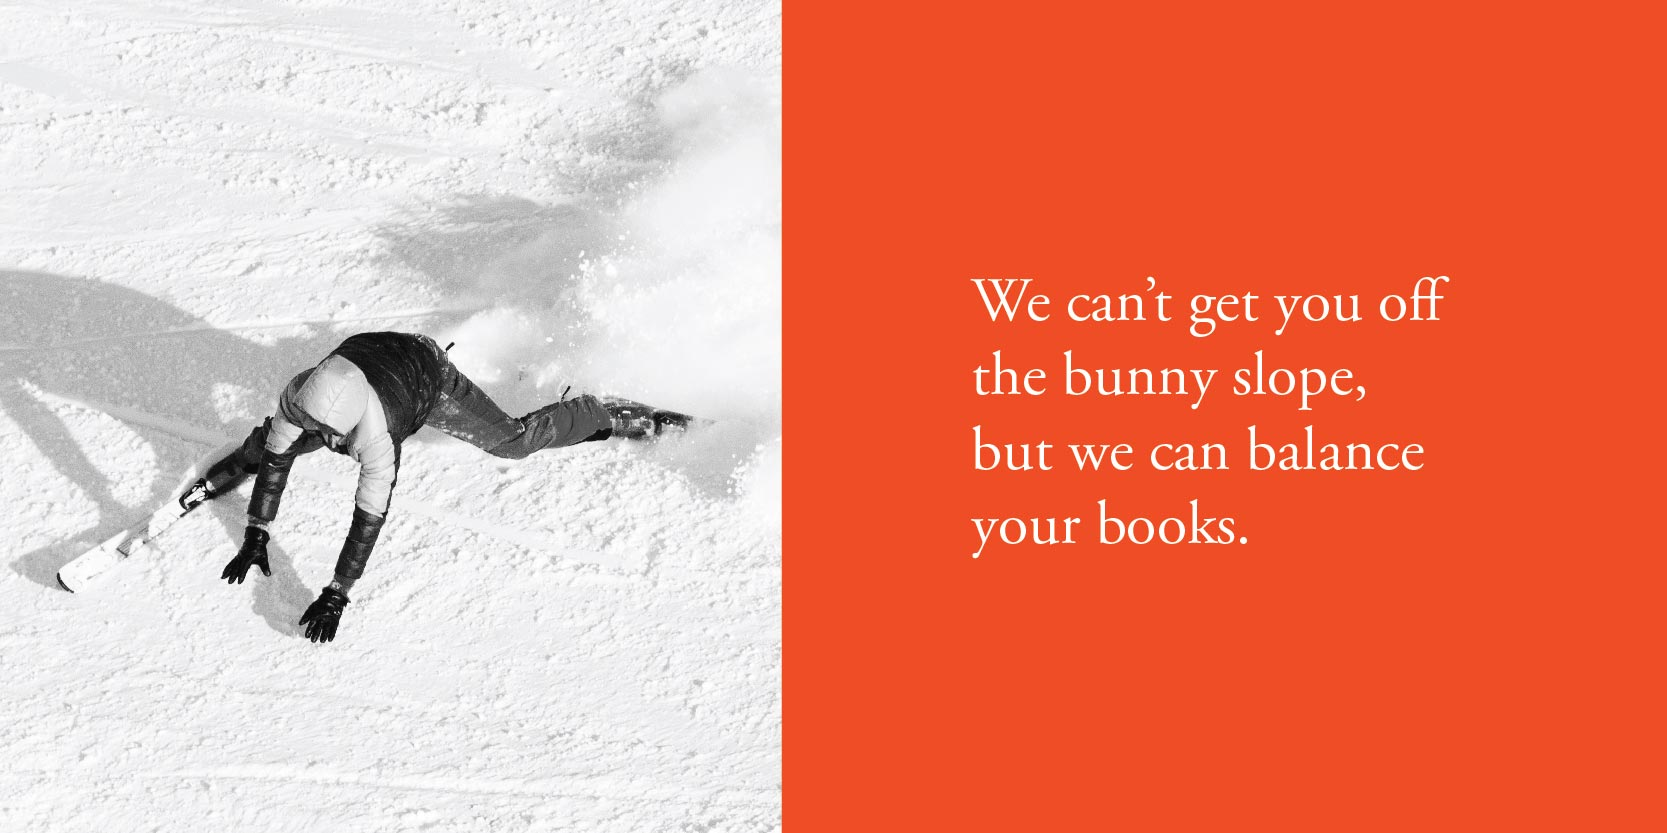 We can't get you off the bunny slope, but we can balance your books.